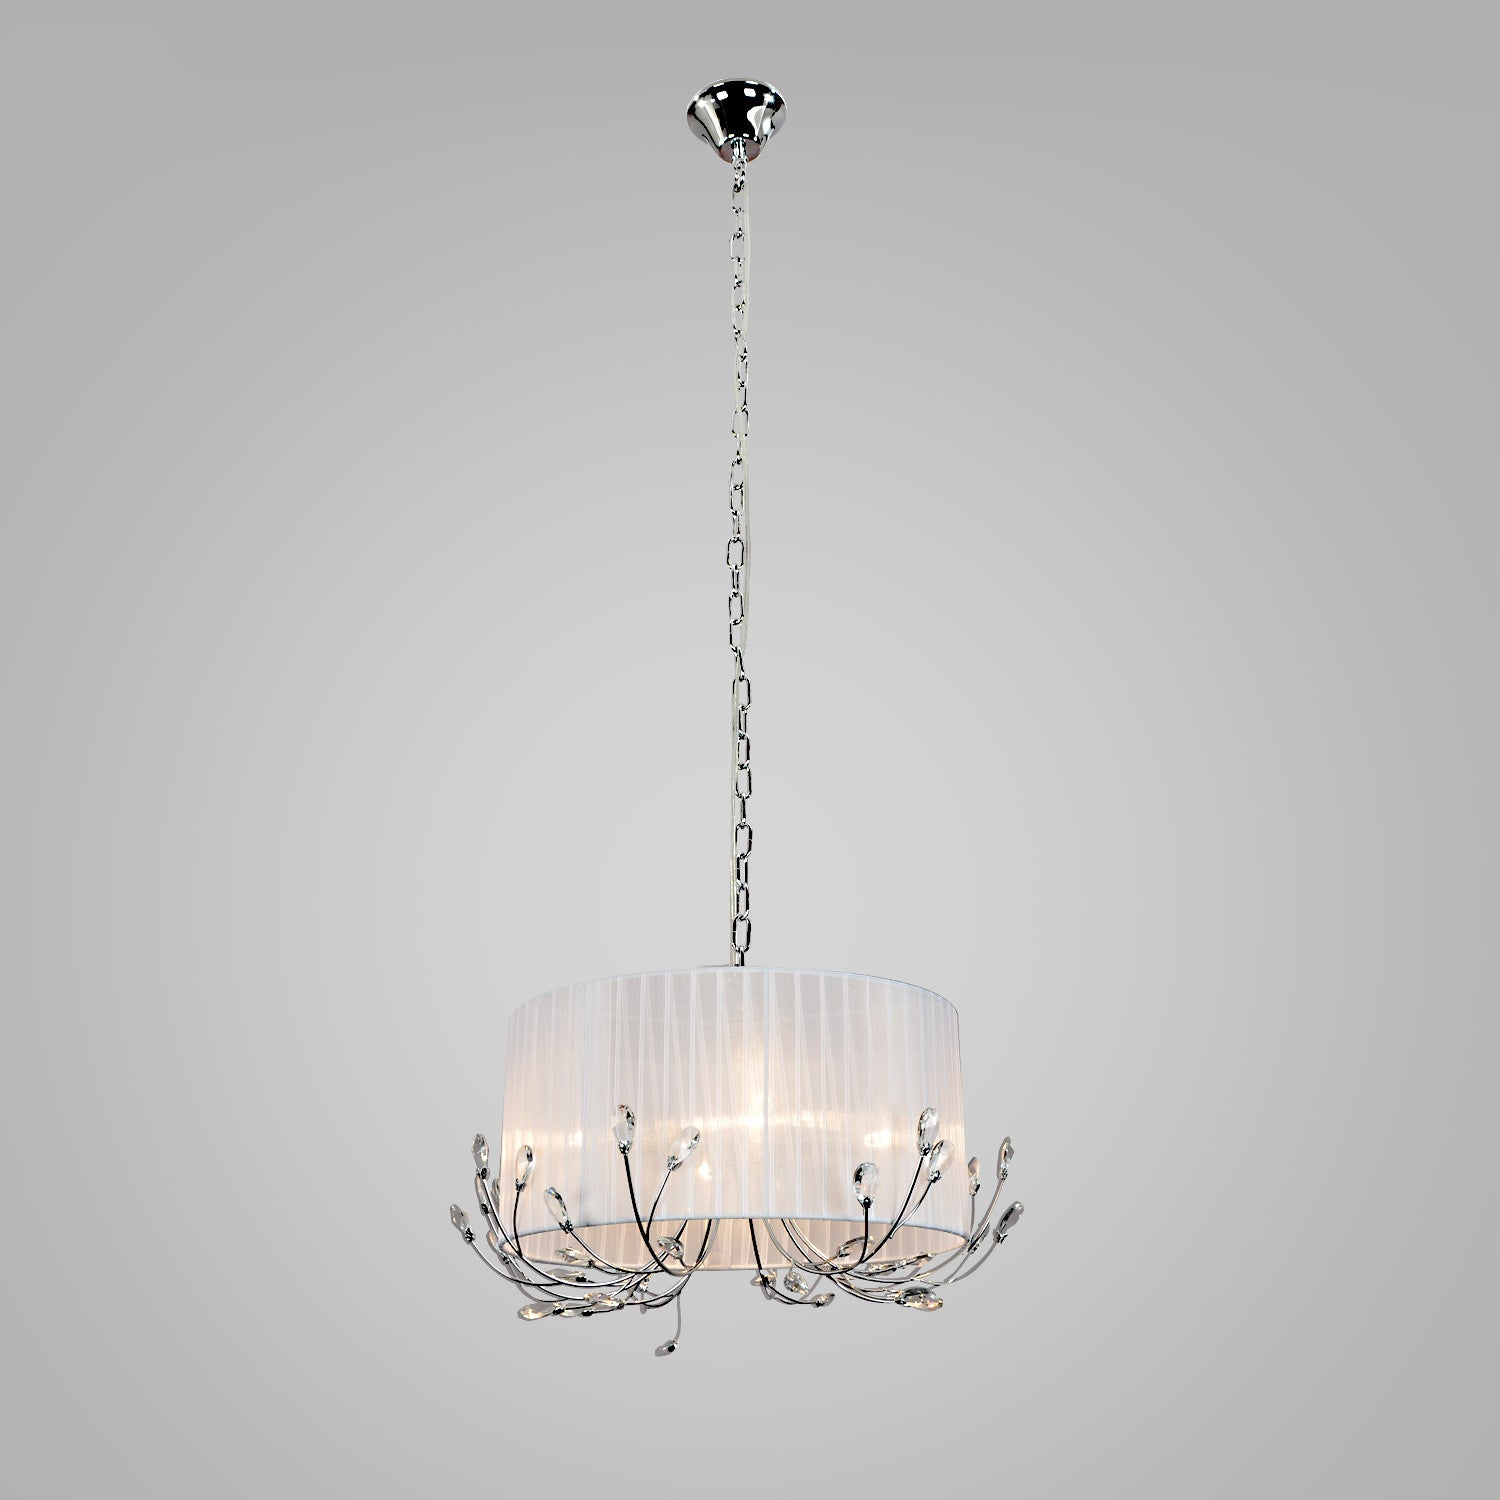 Unitary Brand Drum Fabric Shade Crystal Chandelier Max 240w With 4 Lights Chrome Finish